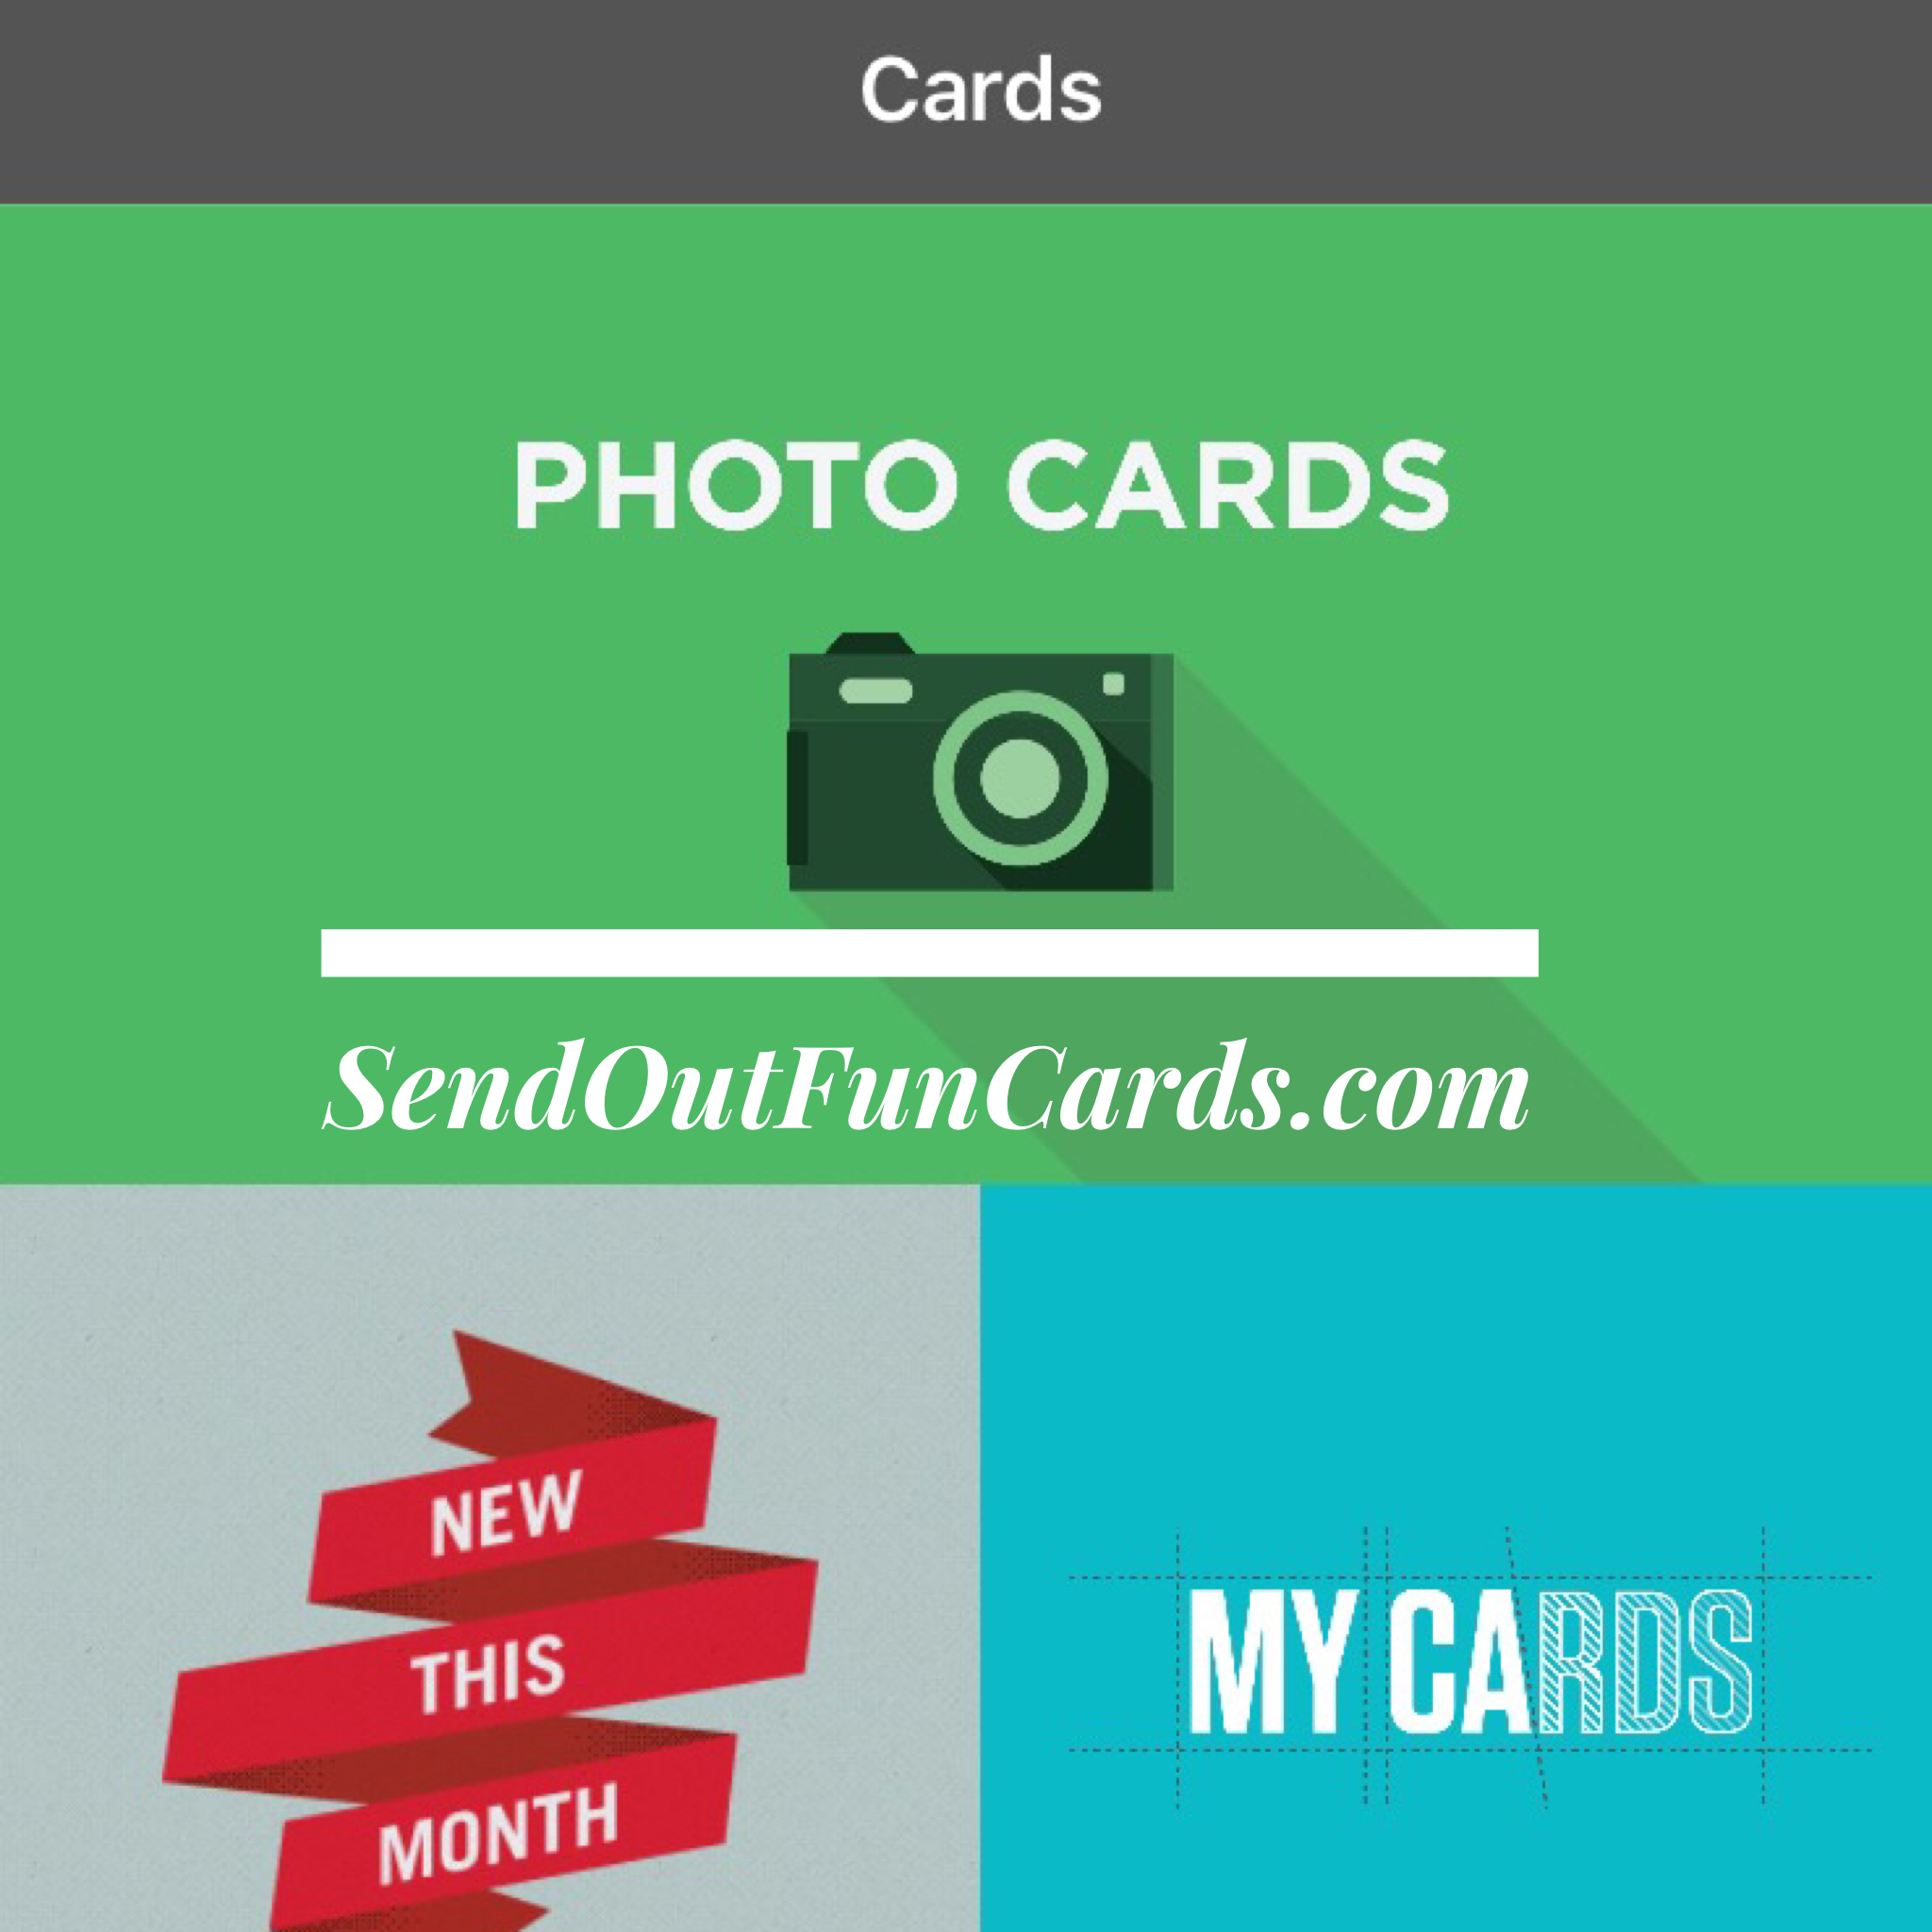 Send Out Cards App Details -